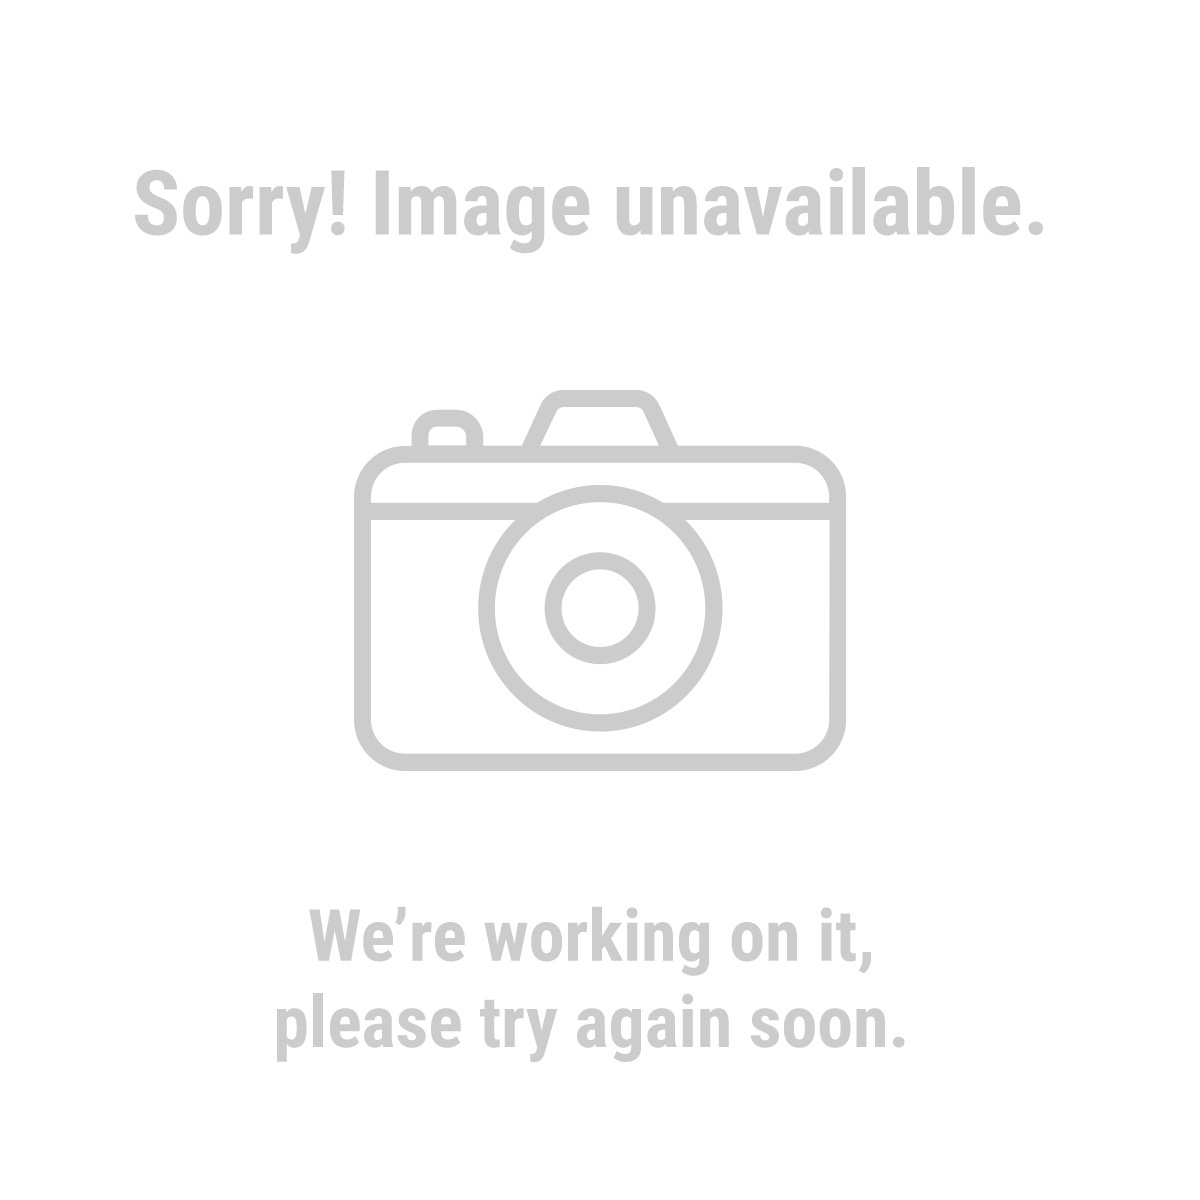 Lifetime Carbide® 90312 Pack of 6 Medium Grade Aluminum Oxide Sanding Sponges with Beveled Edge